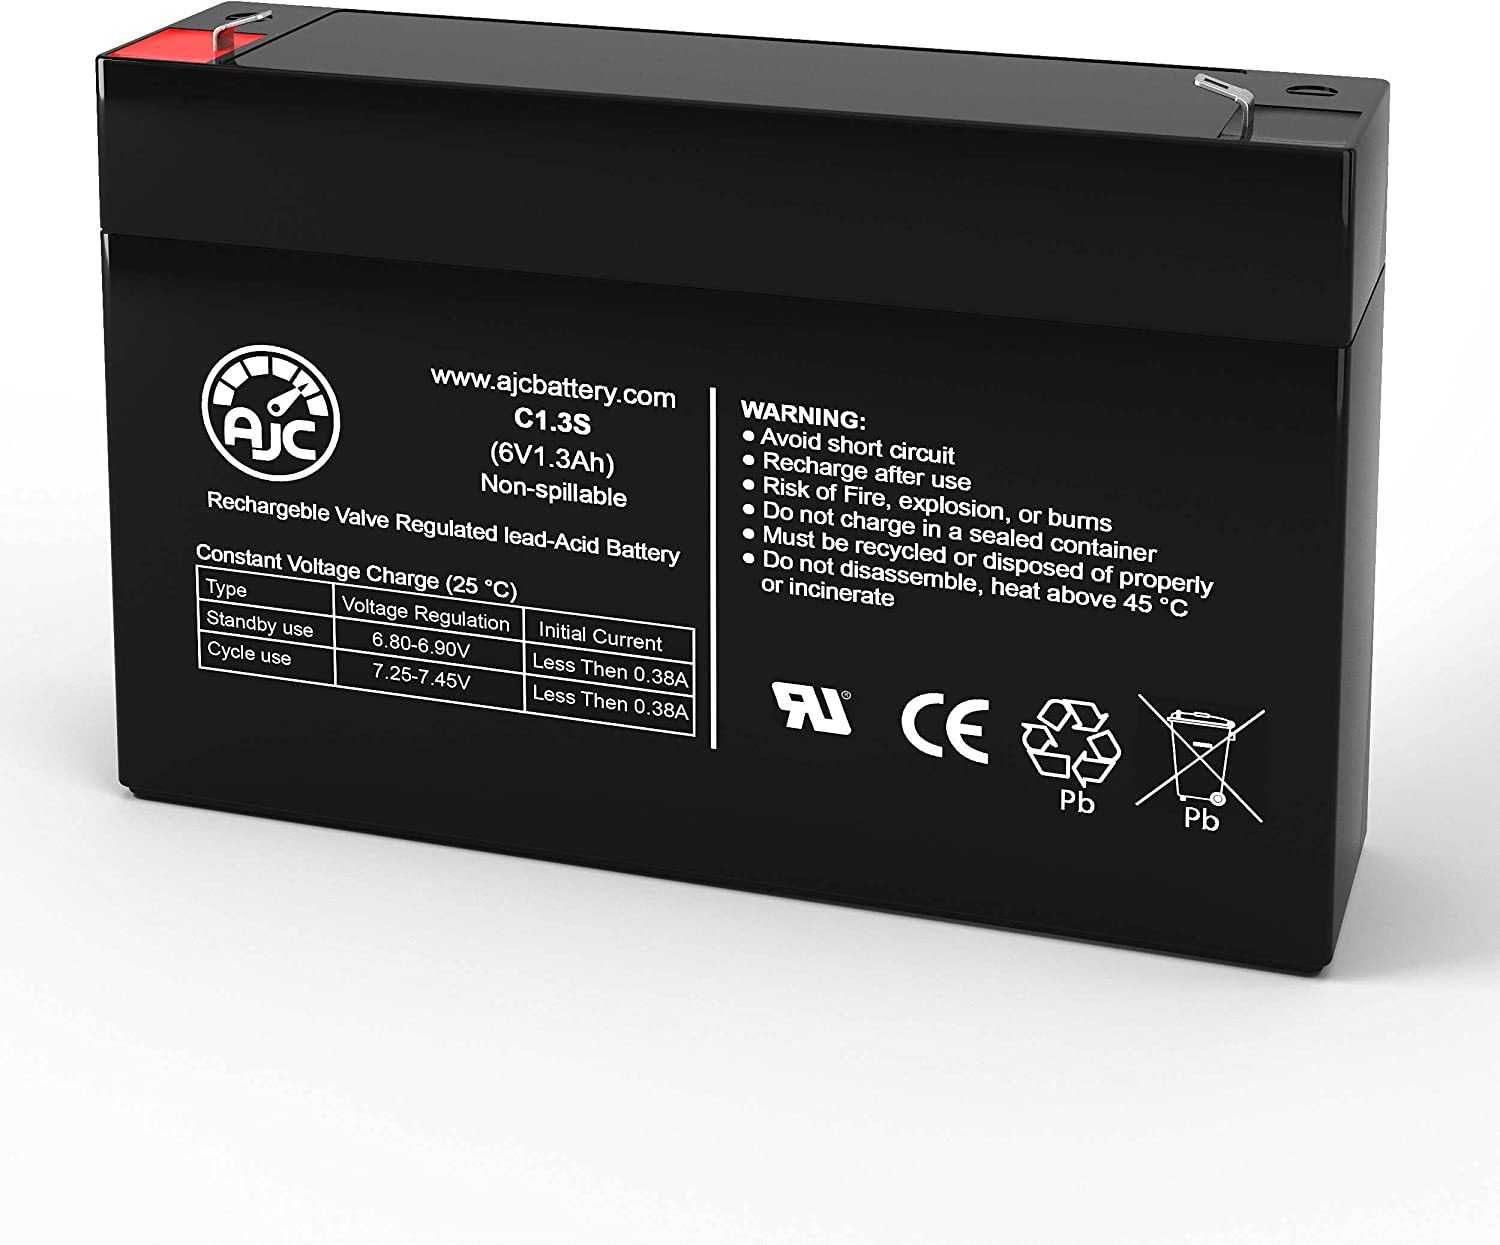 Trust BB BP1.2-6 6V 1.3Ah Sealed Lead Acid Battery AJC - Br This High material an is